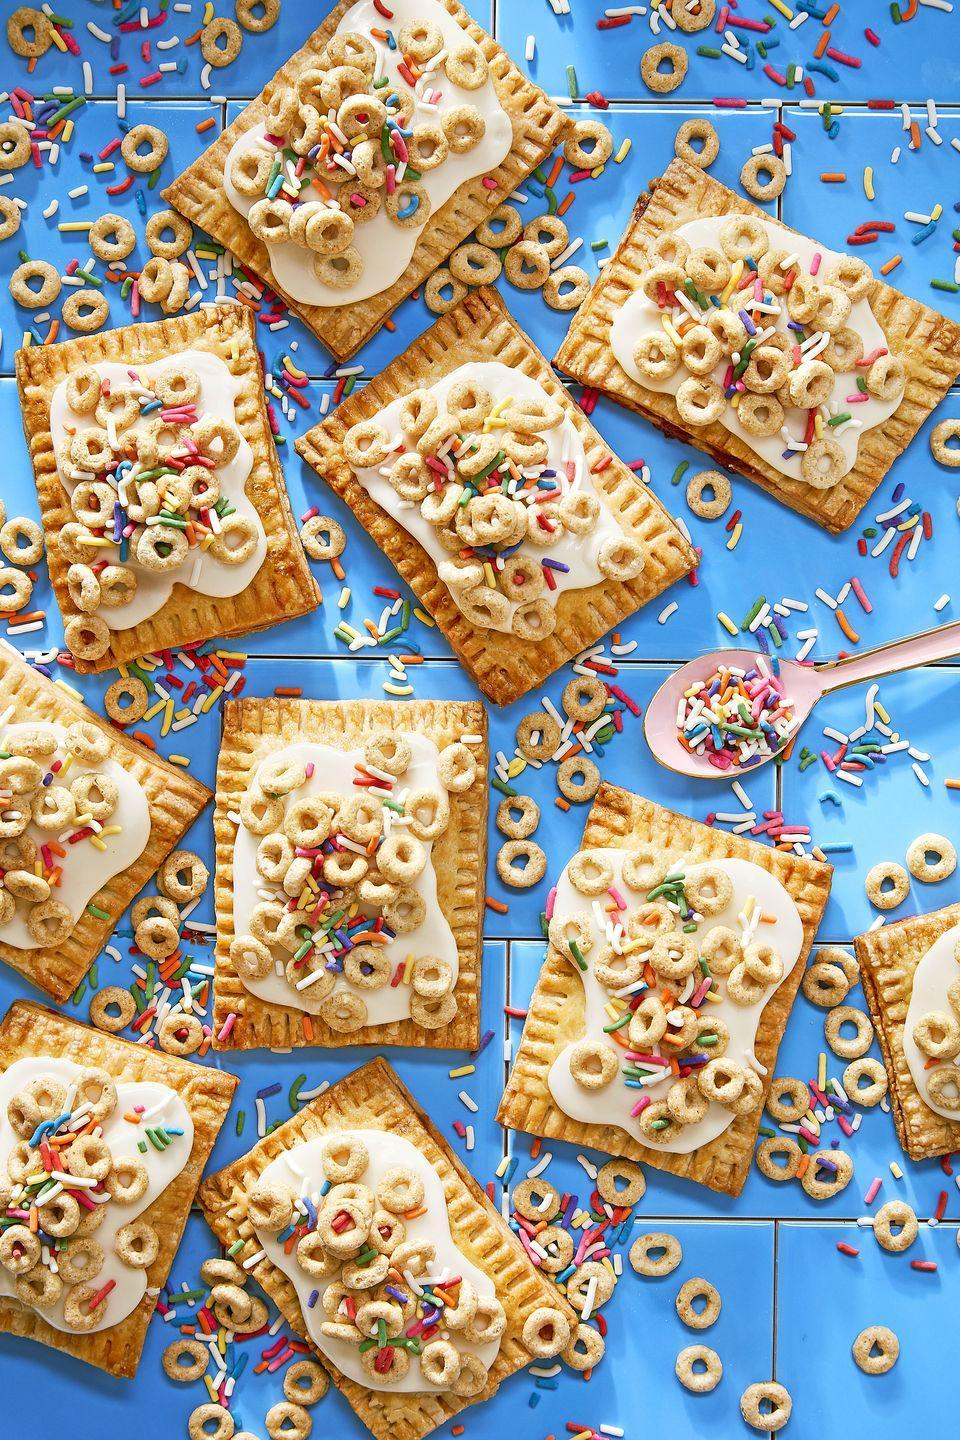 "<p>Turn your kid's favorite cereal into a party-ready turnover treat.</p><p><a href=""https://www.countryliving.com/food-drinks/recipes/a46339/honey-nut-cheerio-turnovers-recipe/"" rel=""nofollow noopener"" target=""_blank"" data-ylk=""slk:Get the Honey Nut Cheerio Turnovers recipe."" class=""link rapid-noclick-resp""><em>Get the Honey Nut Cheerio Turnovers recipe.</em></a></p>"